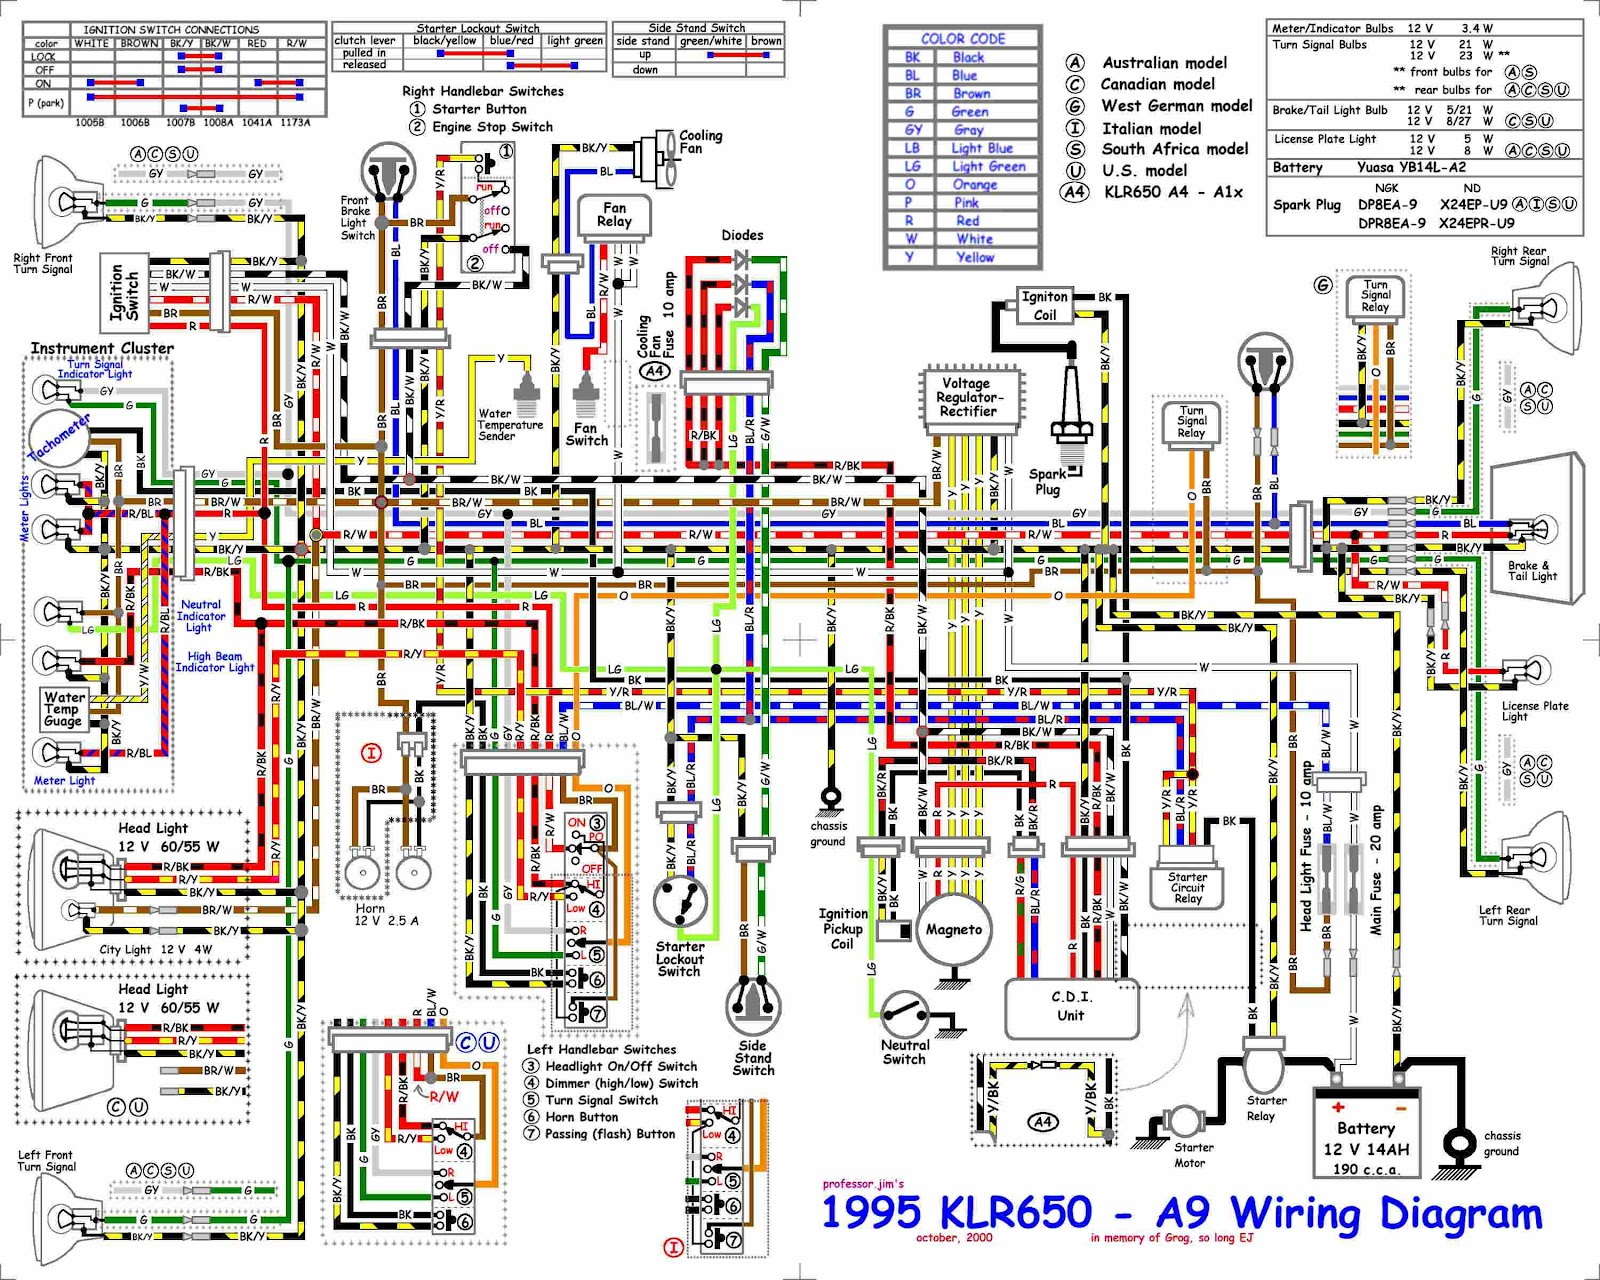 Simple Motorcycle Wiring Diagram For Choppers And Cafe Racers ...